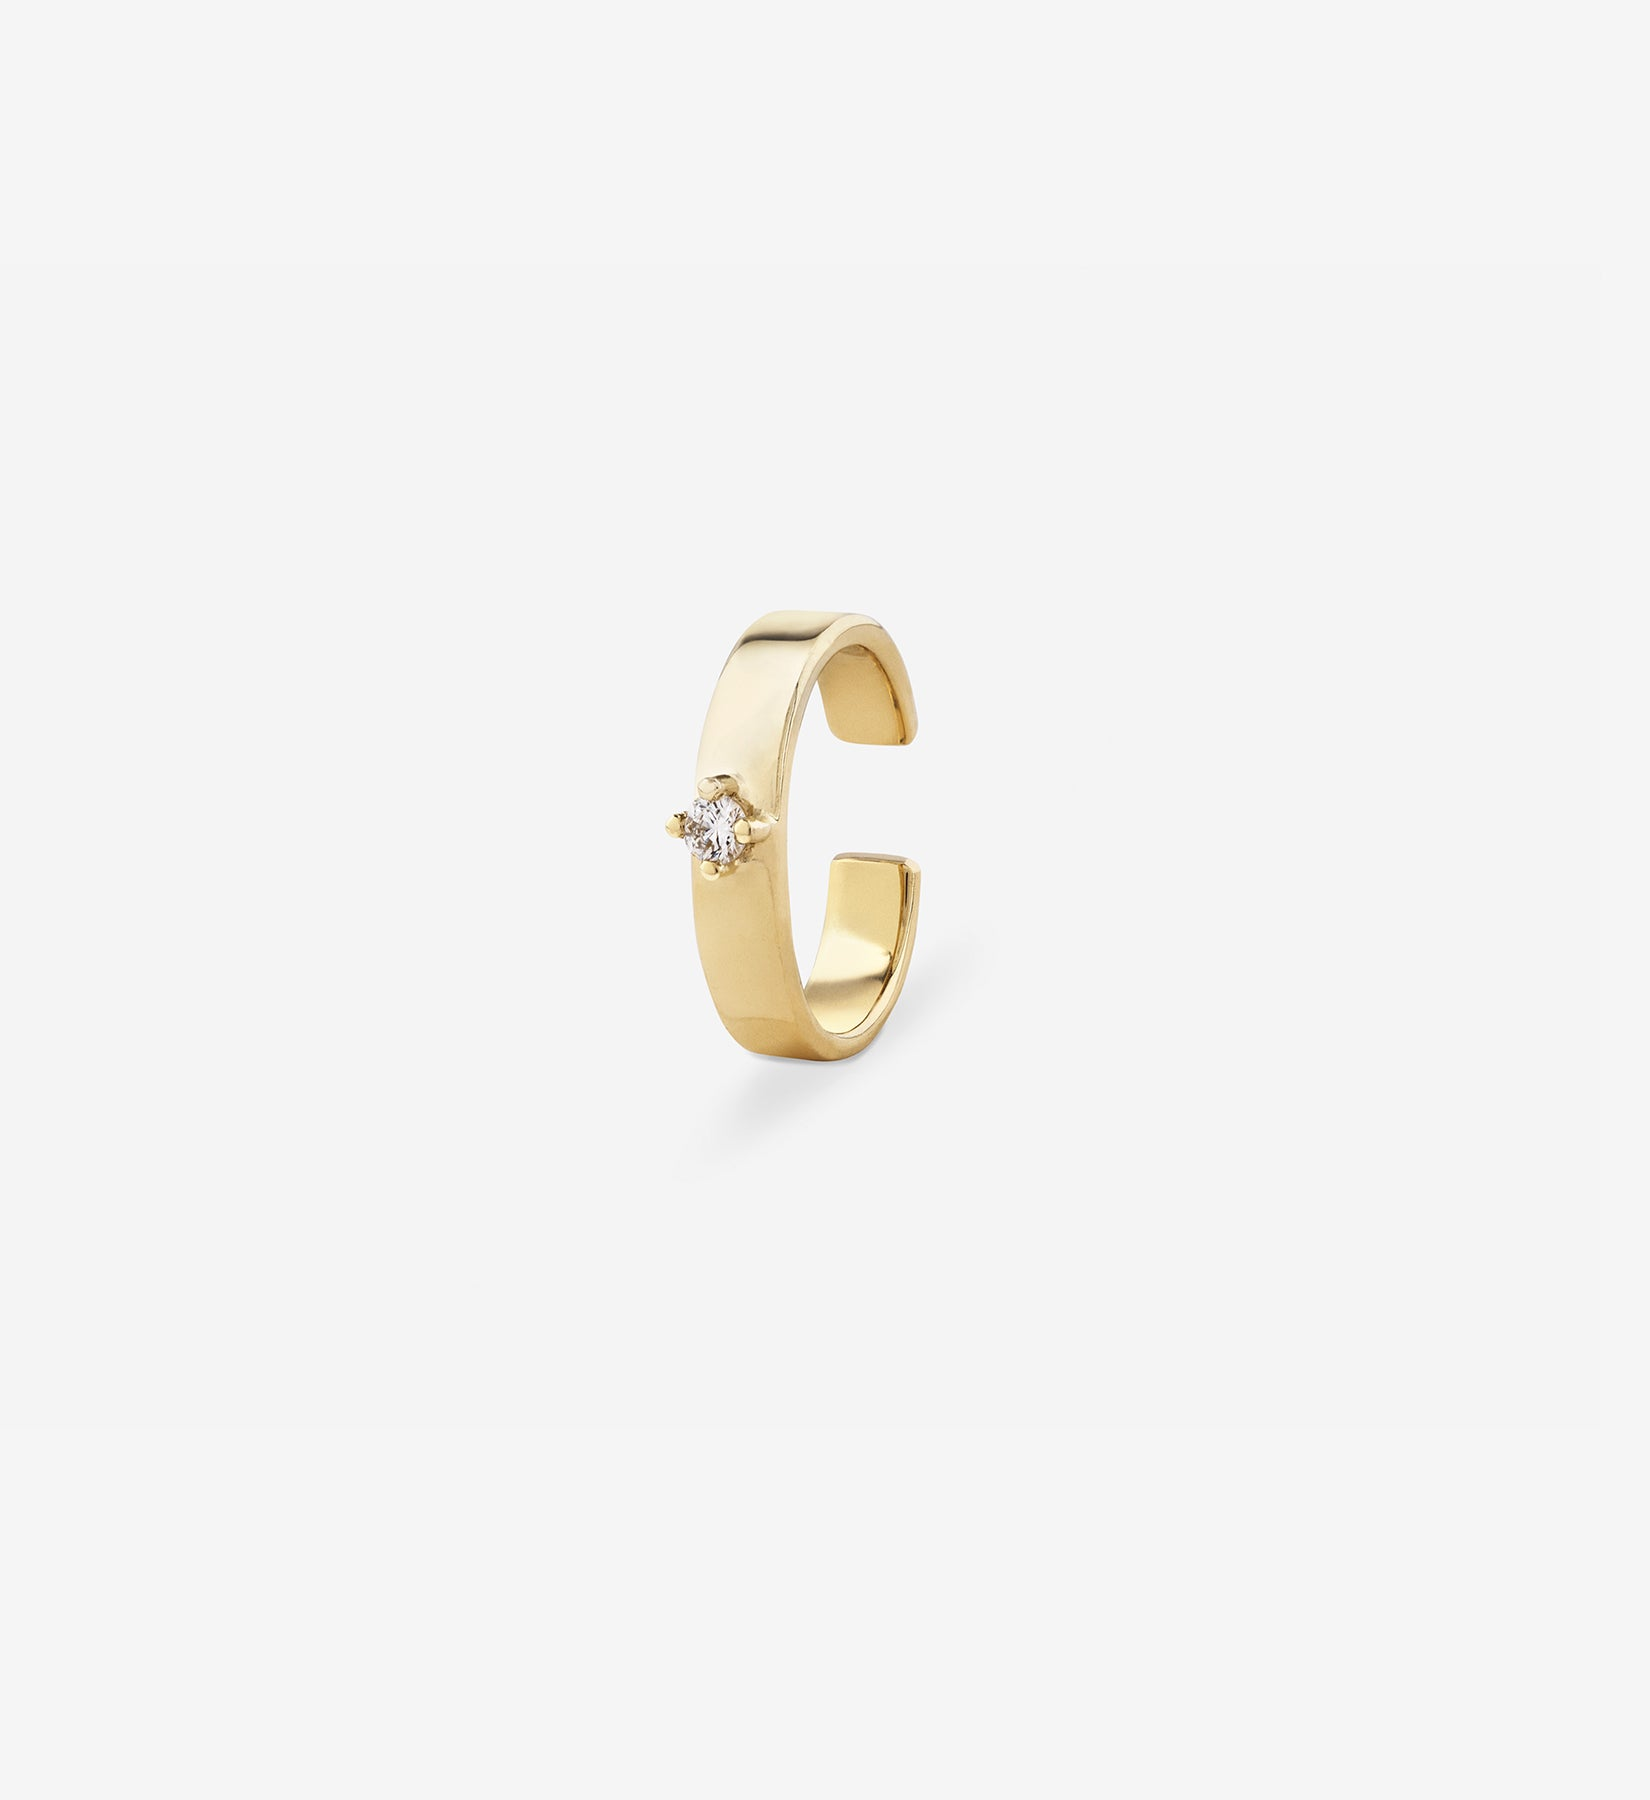 OUVERTURE, Fine jewelry, 14K gold, diamonds, golden ring, diamond ring, golden earring, diamond earring. Handcrafted jewelry. Designed in Berlin. Honestly priced. Demifine. Earparty. Stacking rings. Diamond Huggie, Huggie earring, diamond earcuff